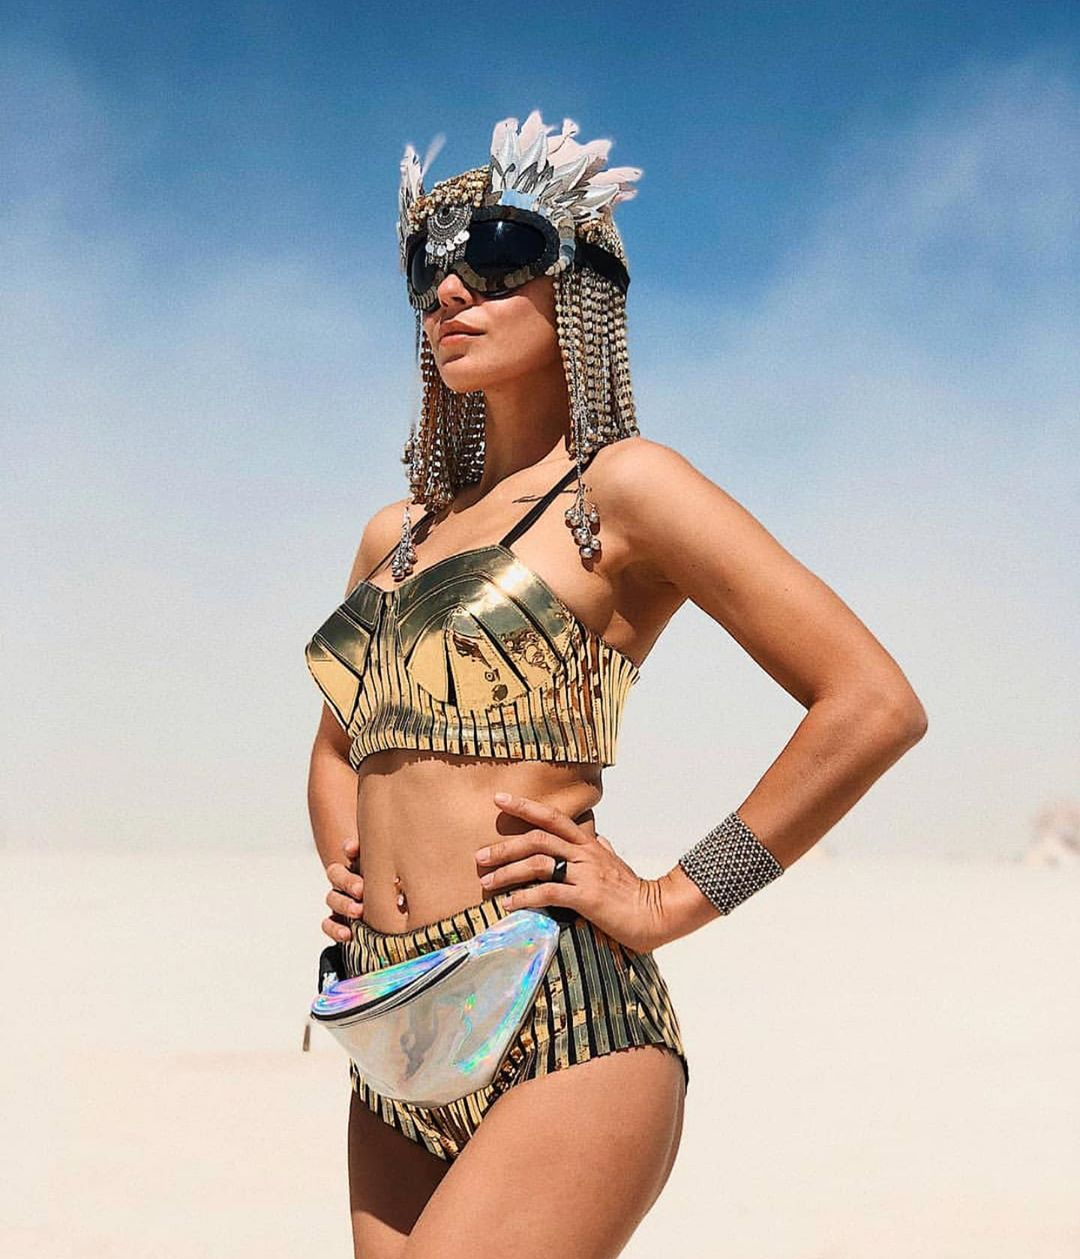 cleopatra-outfit-idea-festival-burning-man-2019